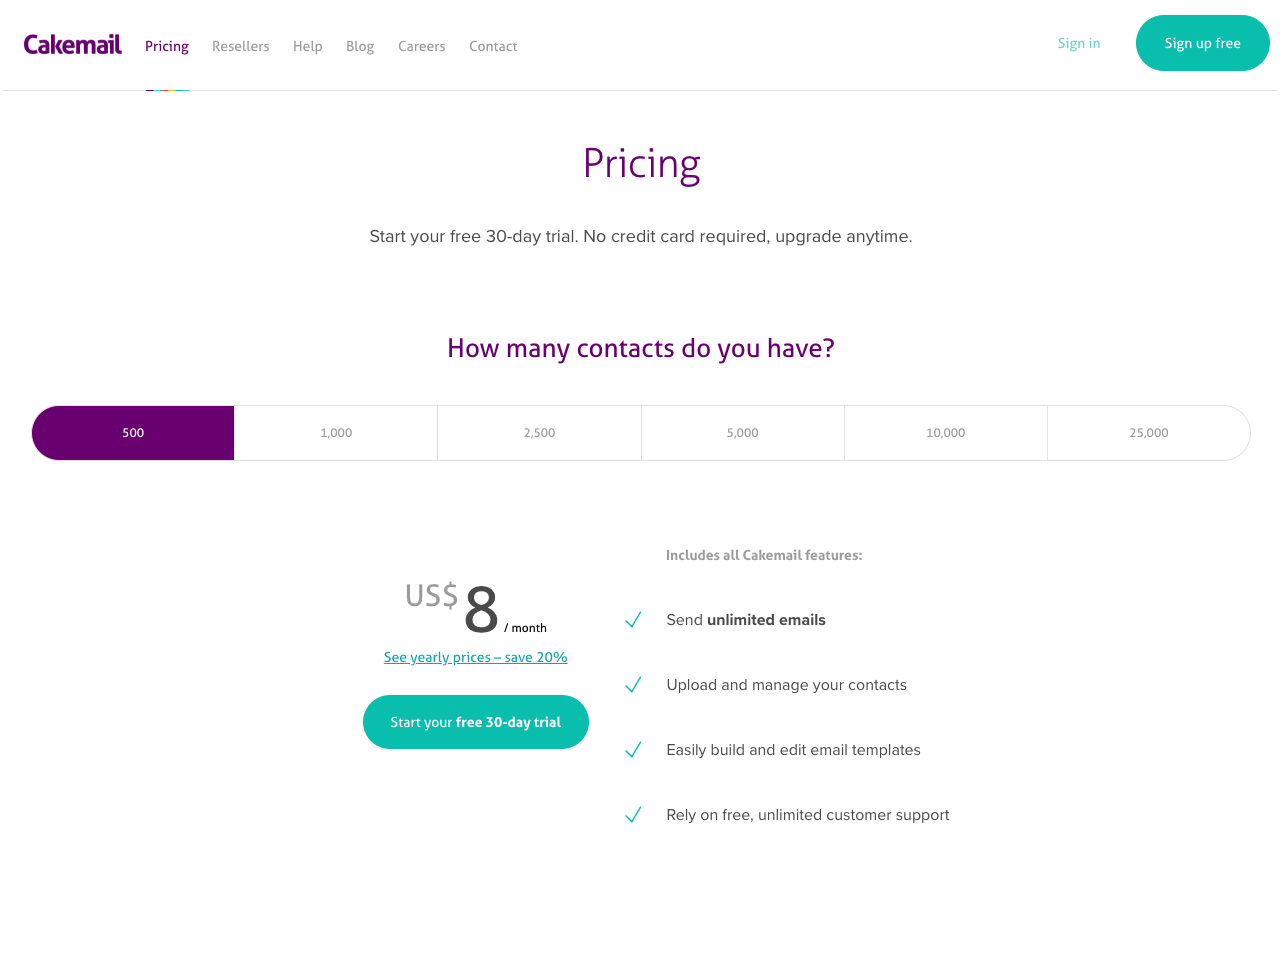 Cakemail email marketing app pricing page